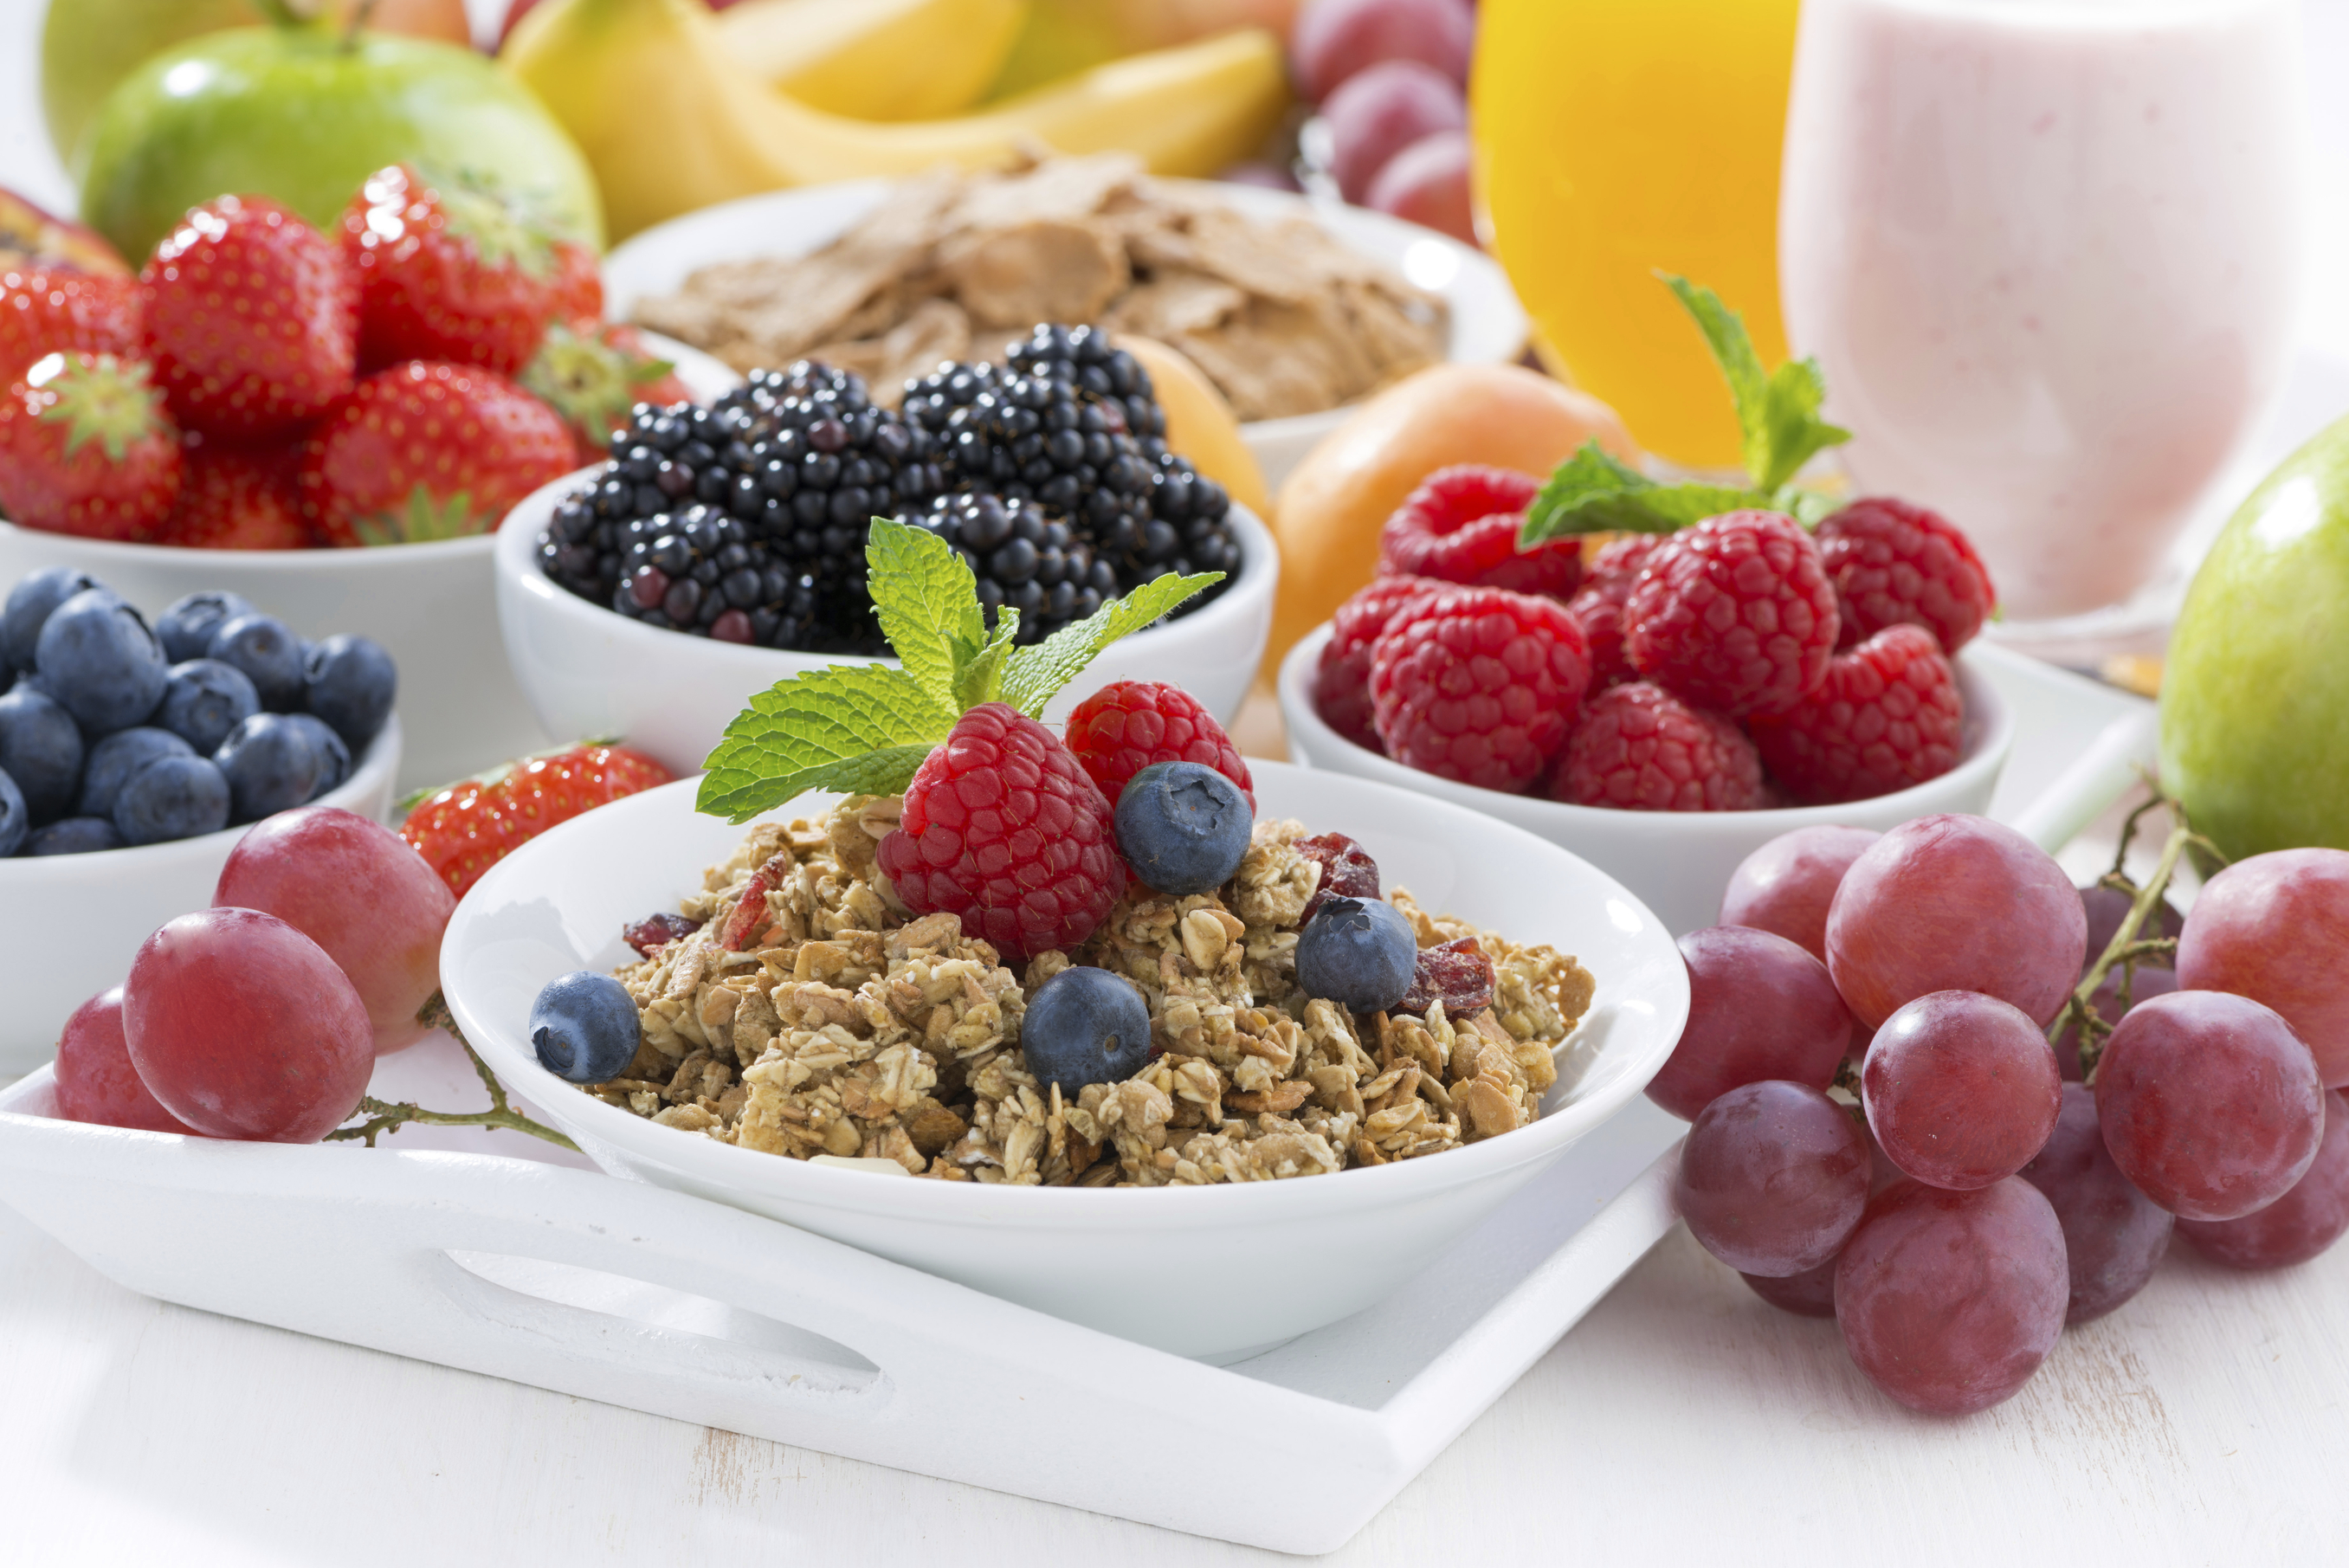 Healthy Foods as a Wellness Trend for Any Hotel